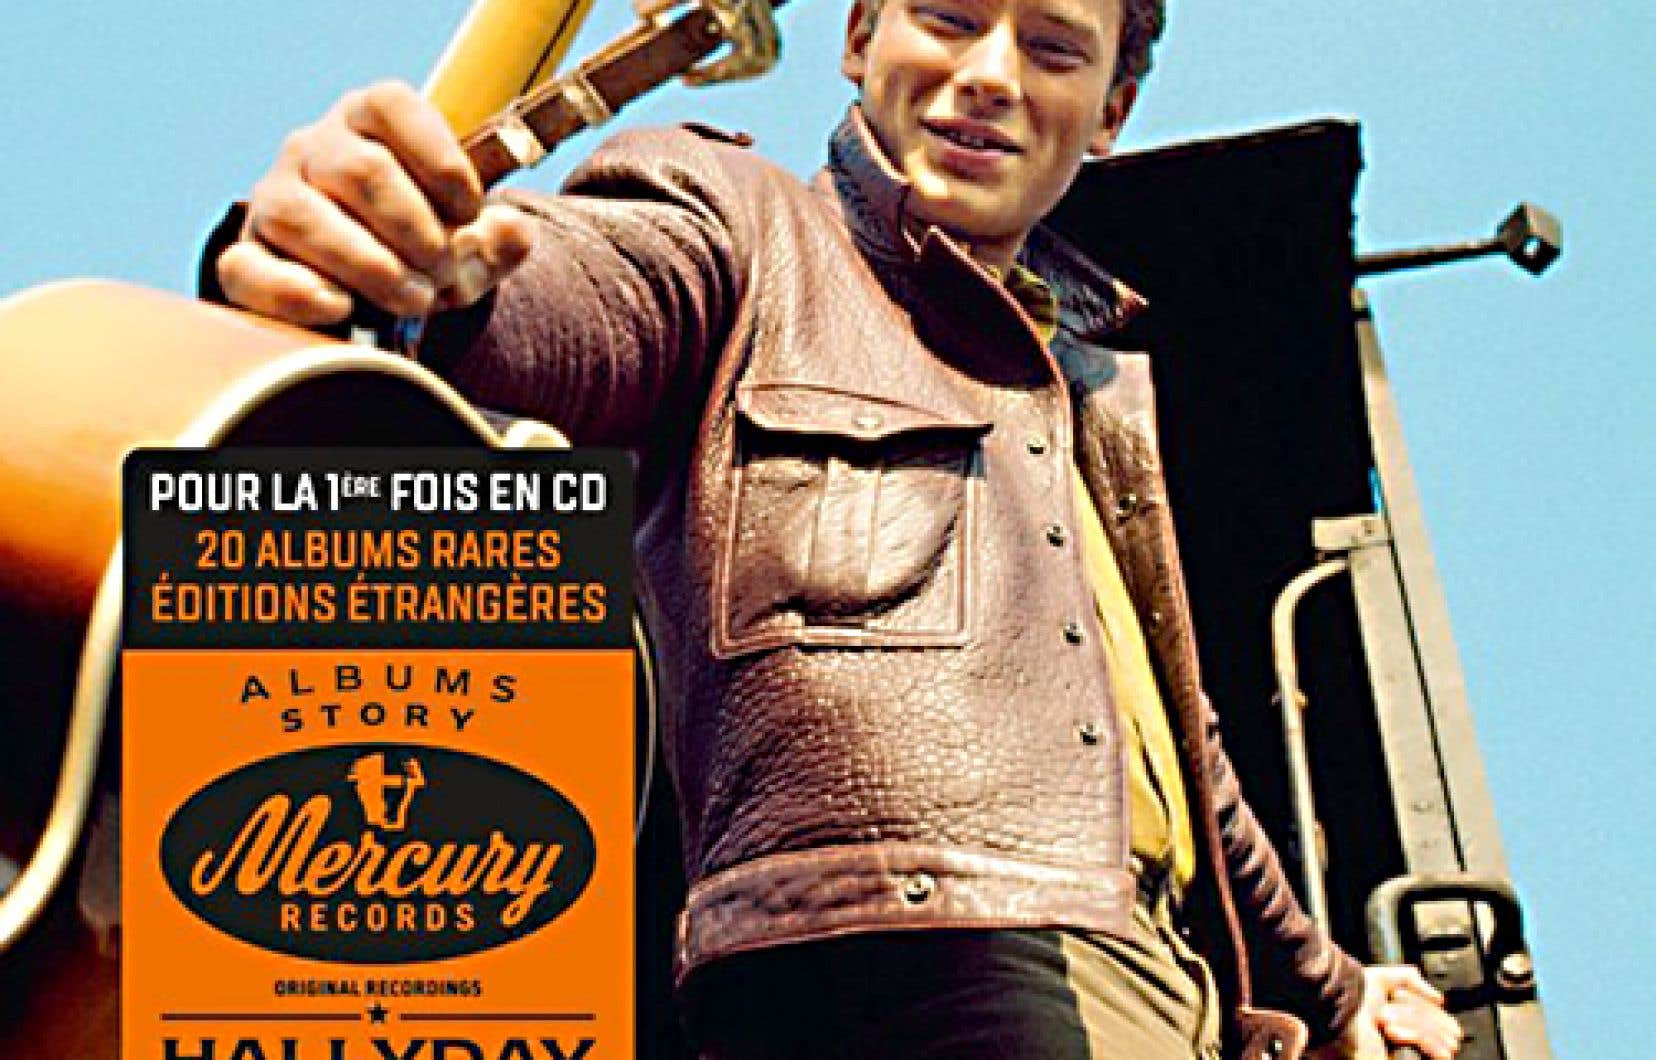 International, Johnny Hallyday - Le Devoir